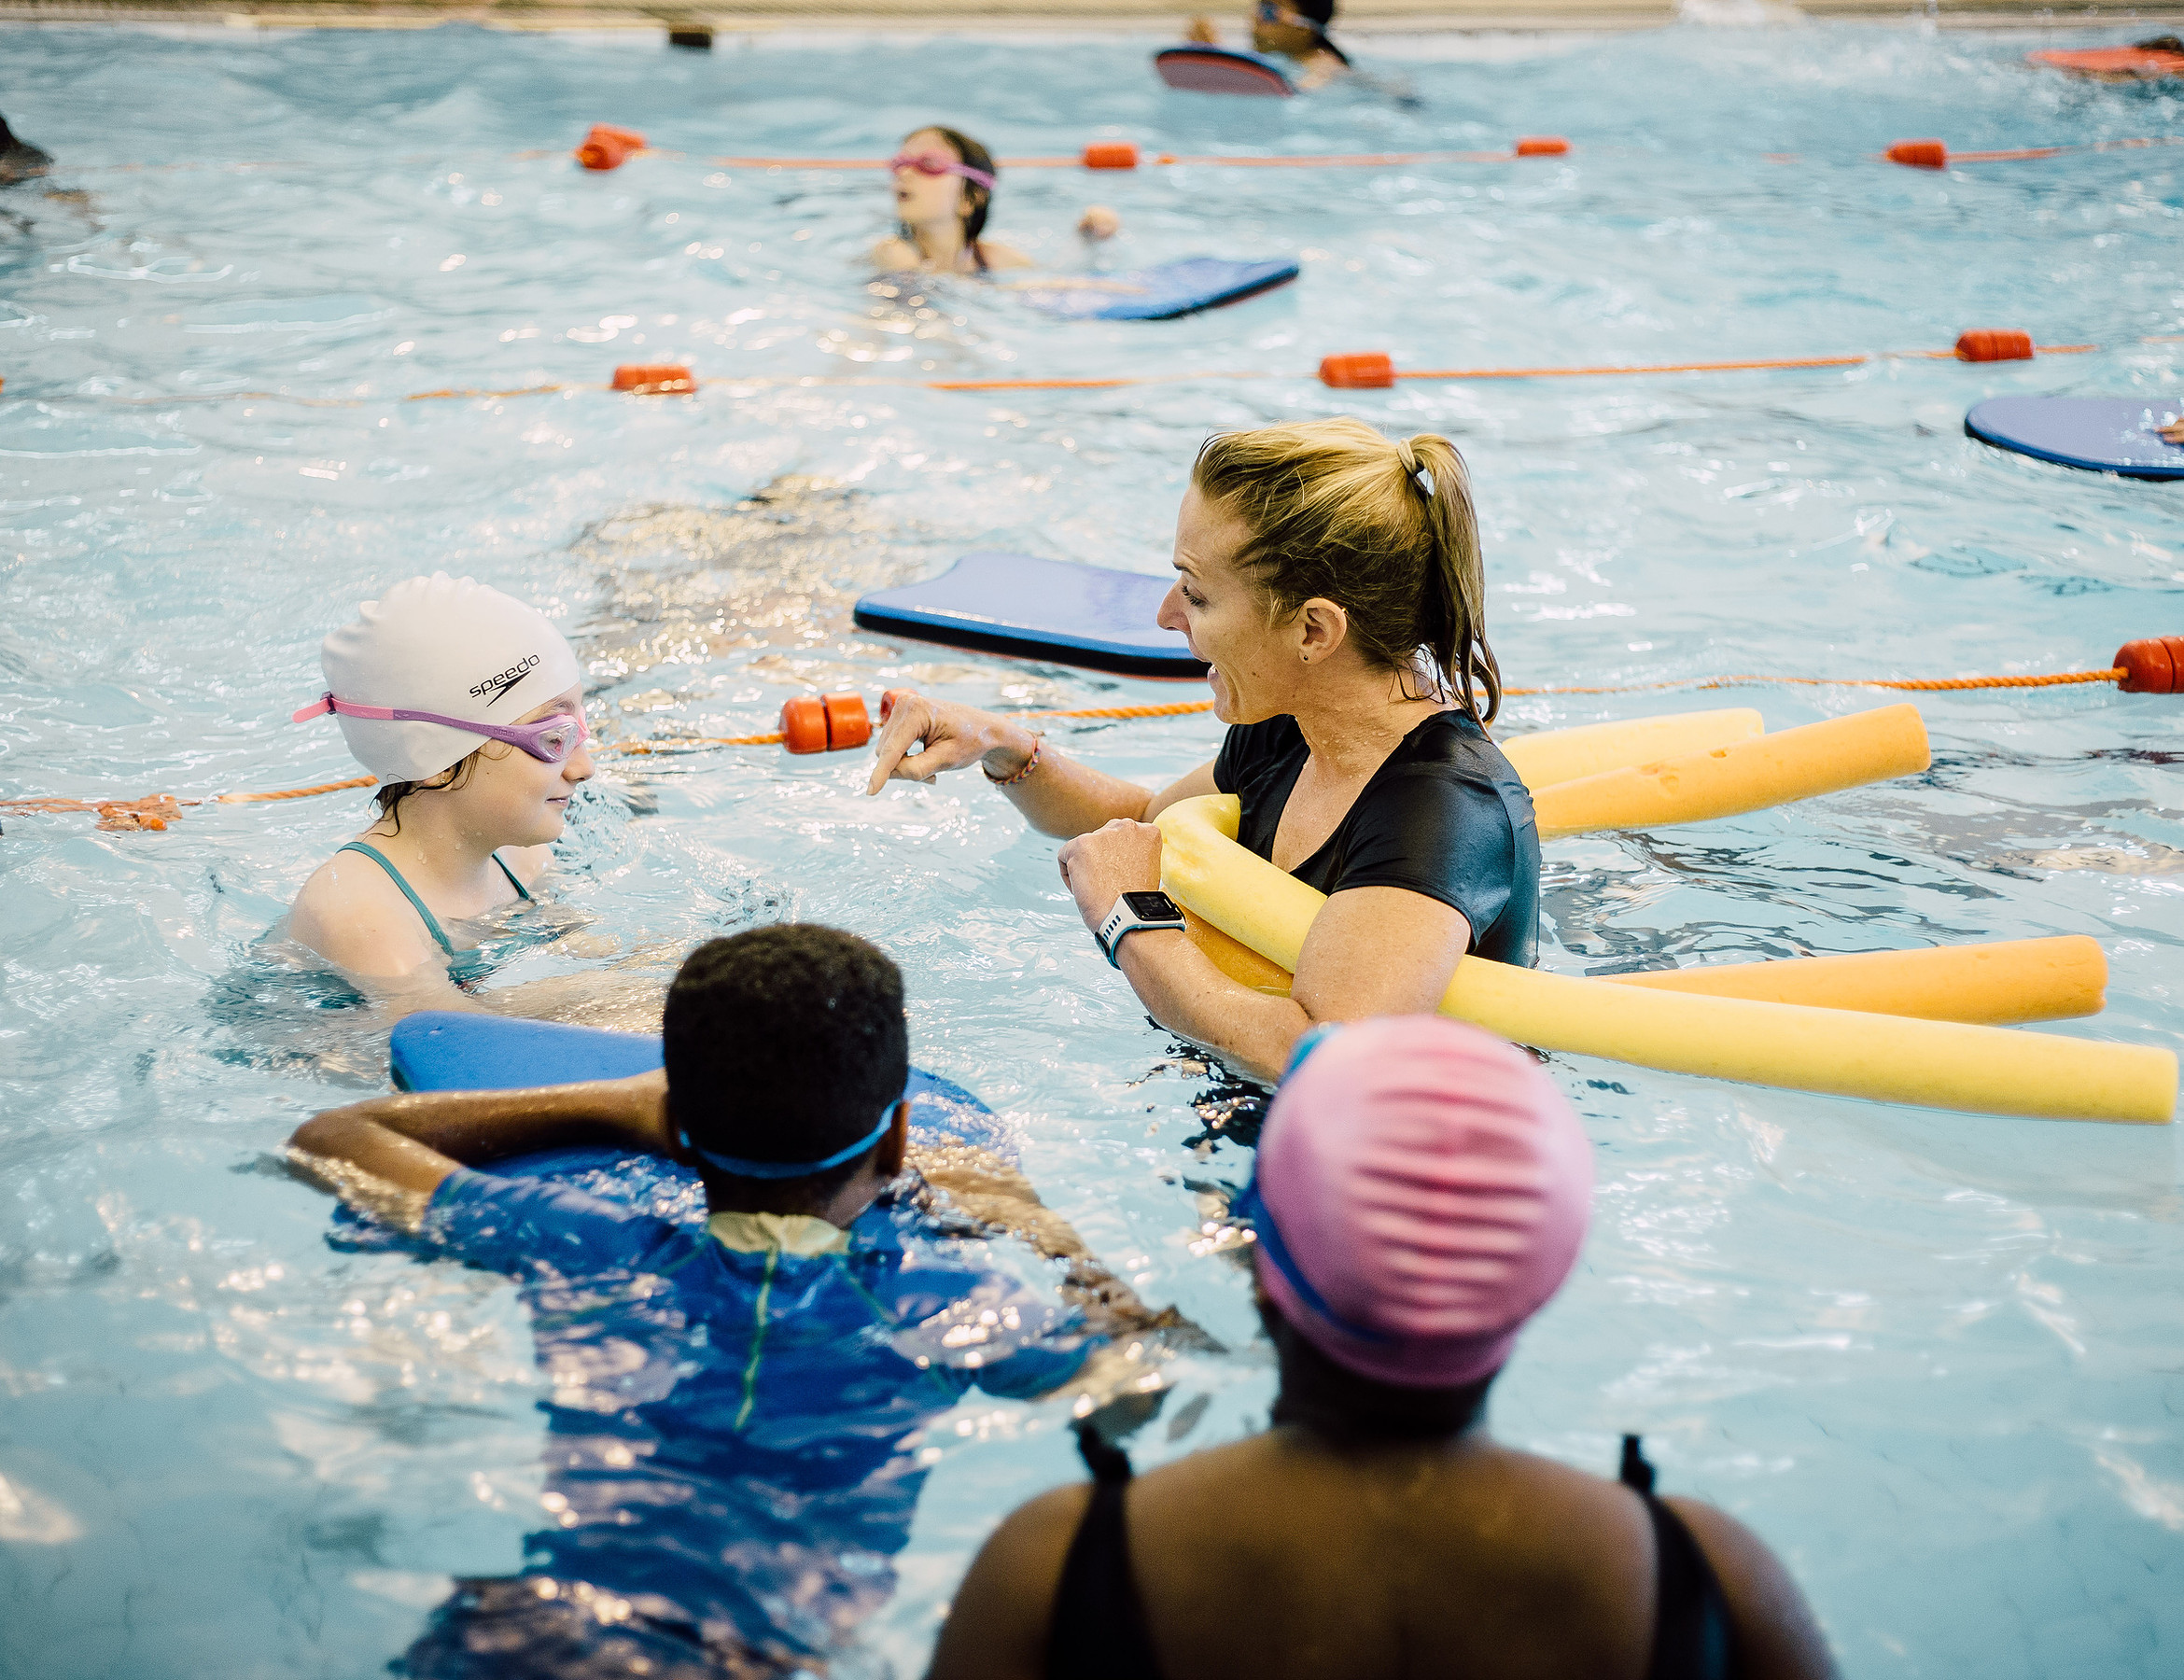 Local Schools - Kimberley Swim Clinics is passionate about getting all local children swimming and so works with Wandsworth primary schools to help them meet National Curriculum Requirements.The National Curriculum expectation is that by the time children leave primary school they should be able to swim at least 25m unaided. Unfortunately in Wandsworth Borough many children are leaving primary school unable to swim 25m and at Kimberley Swim Clinics we are determined to help change this.We have developed a range of affordable clinics specifically for children referred to us by their schools. For more information Wandsworth primary schools can call Kimberley on 07771 907 553 or email kim@kimberleyswimclinics.co.uk.